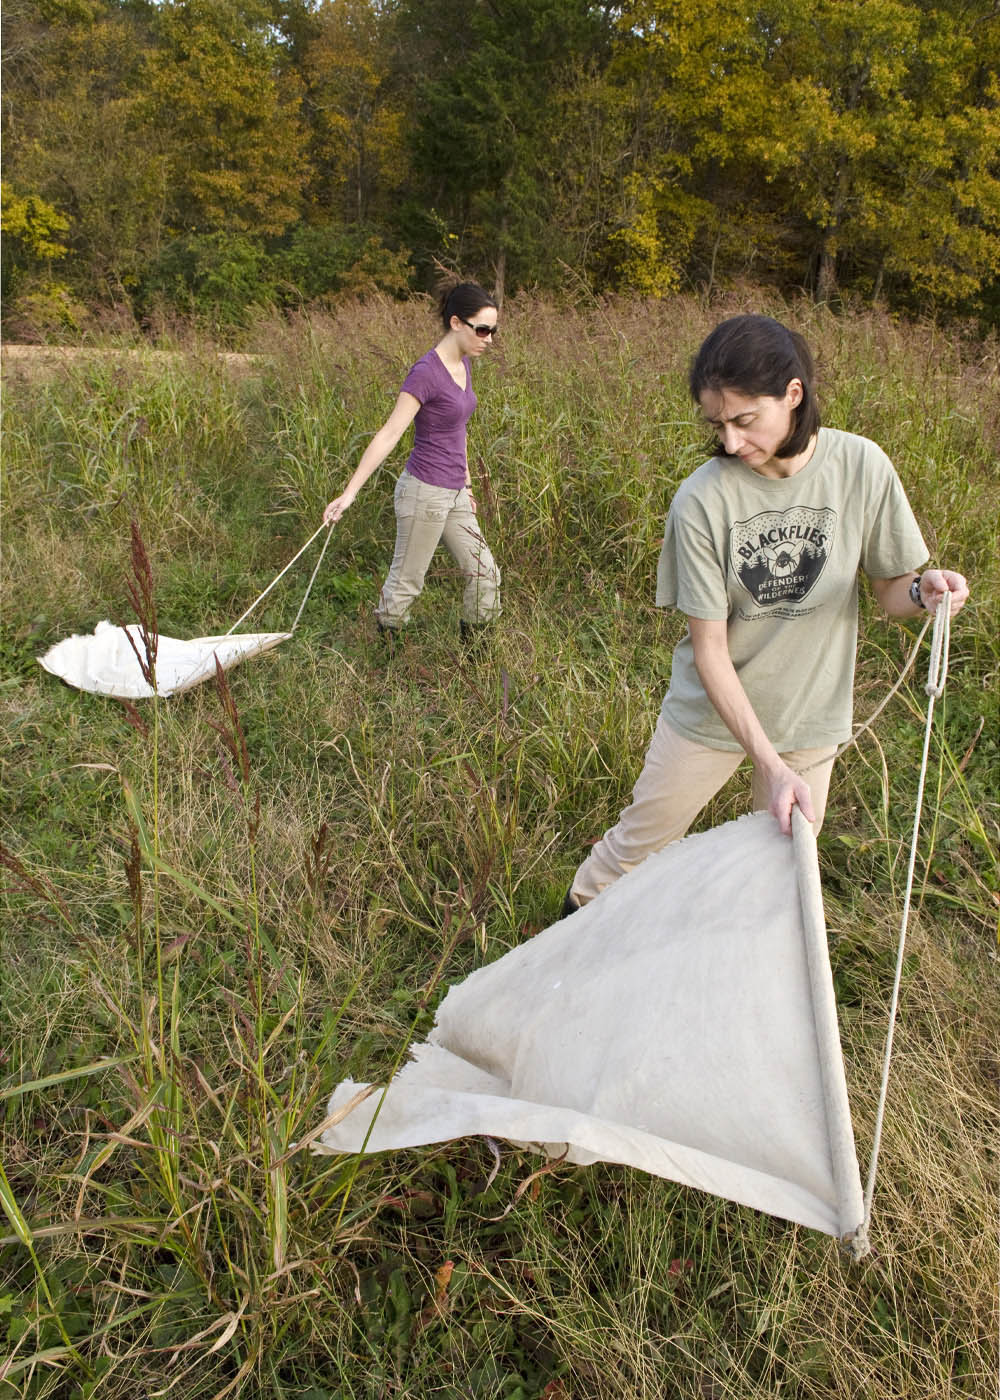 Parasitology research impacts multiple species   Mississippi State ...